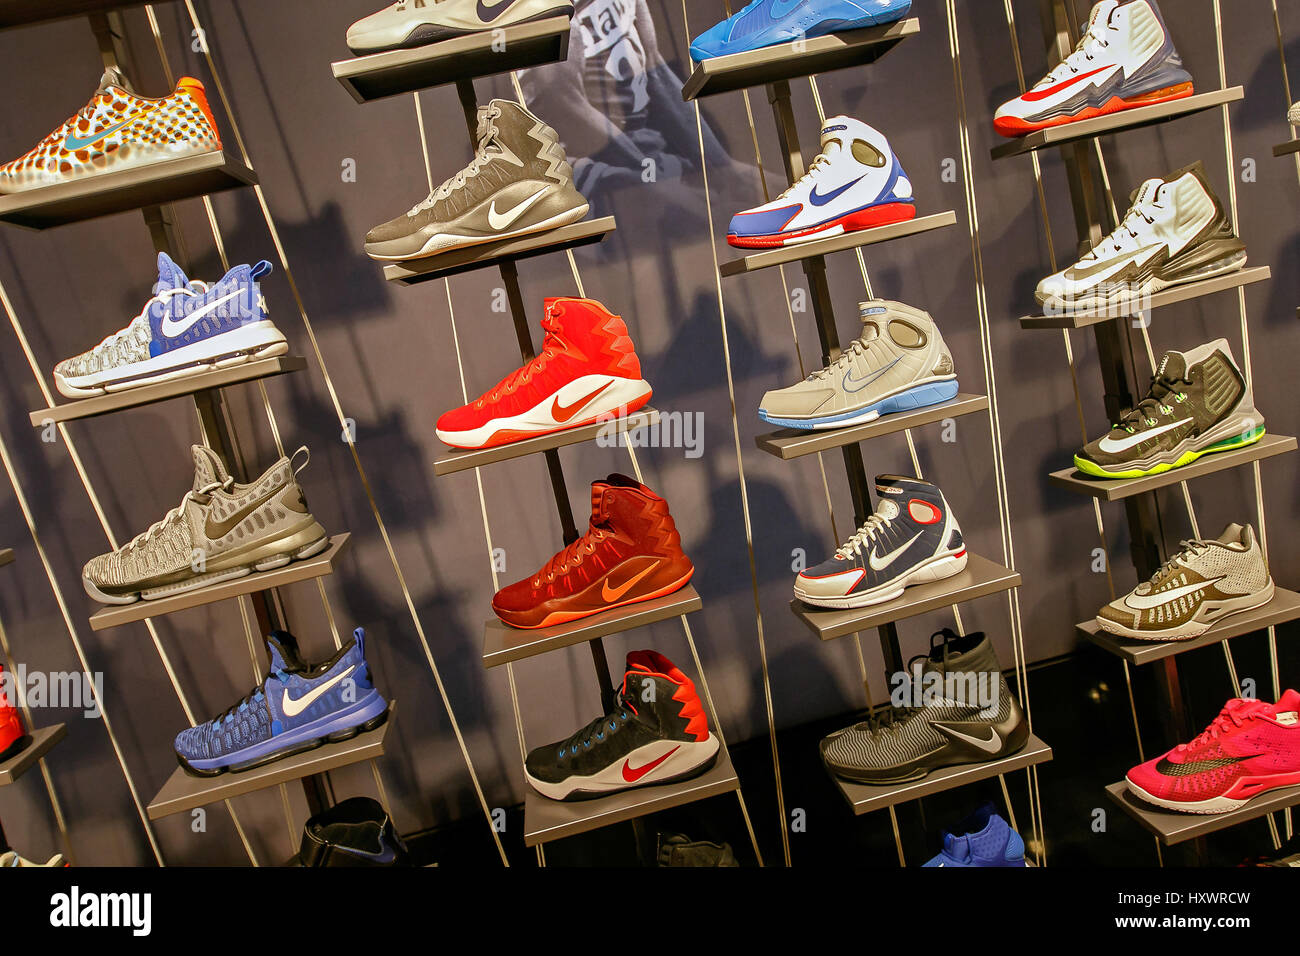 assorted-nike-basketball-shoes-for-sale-